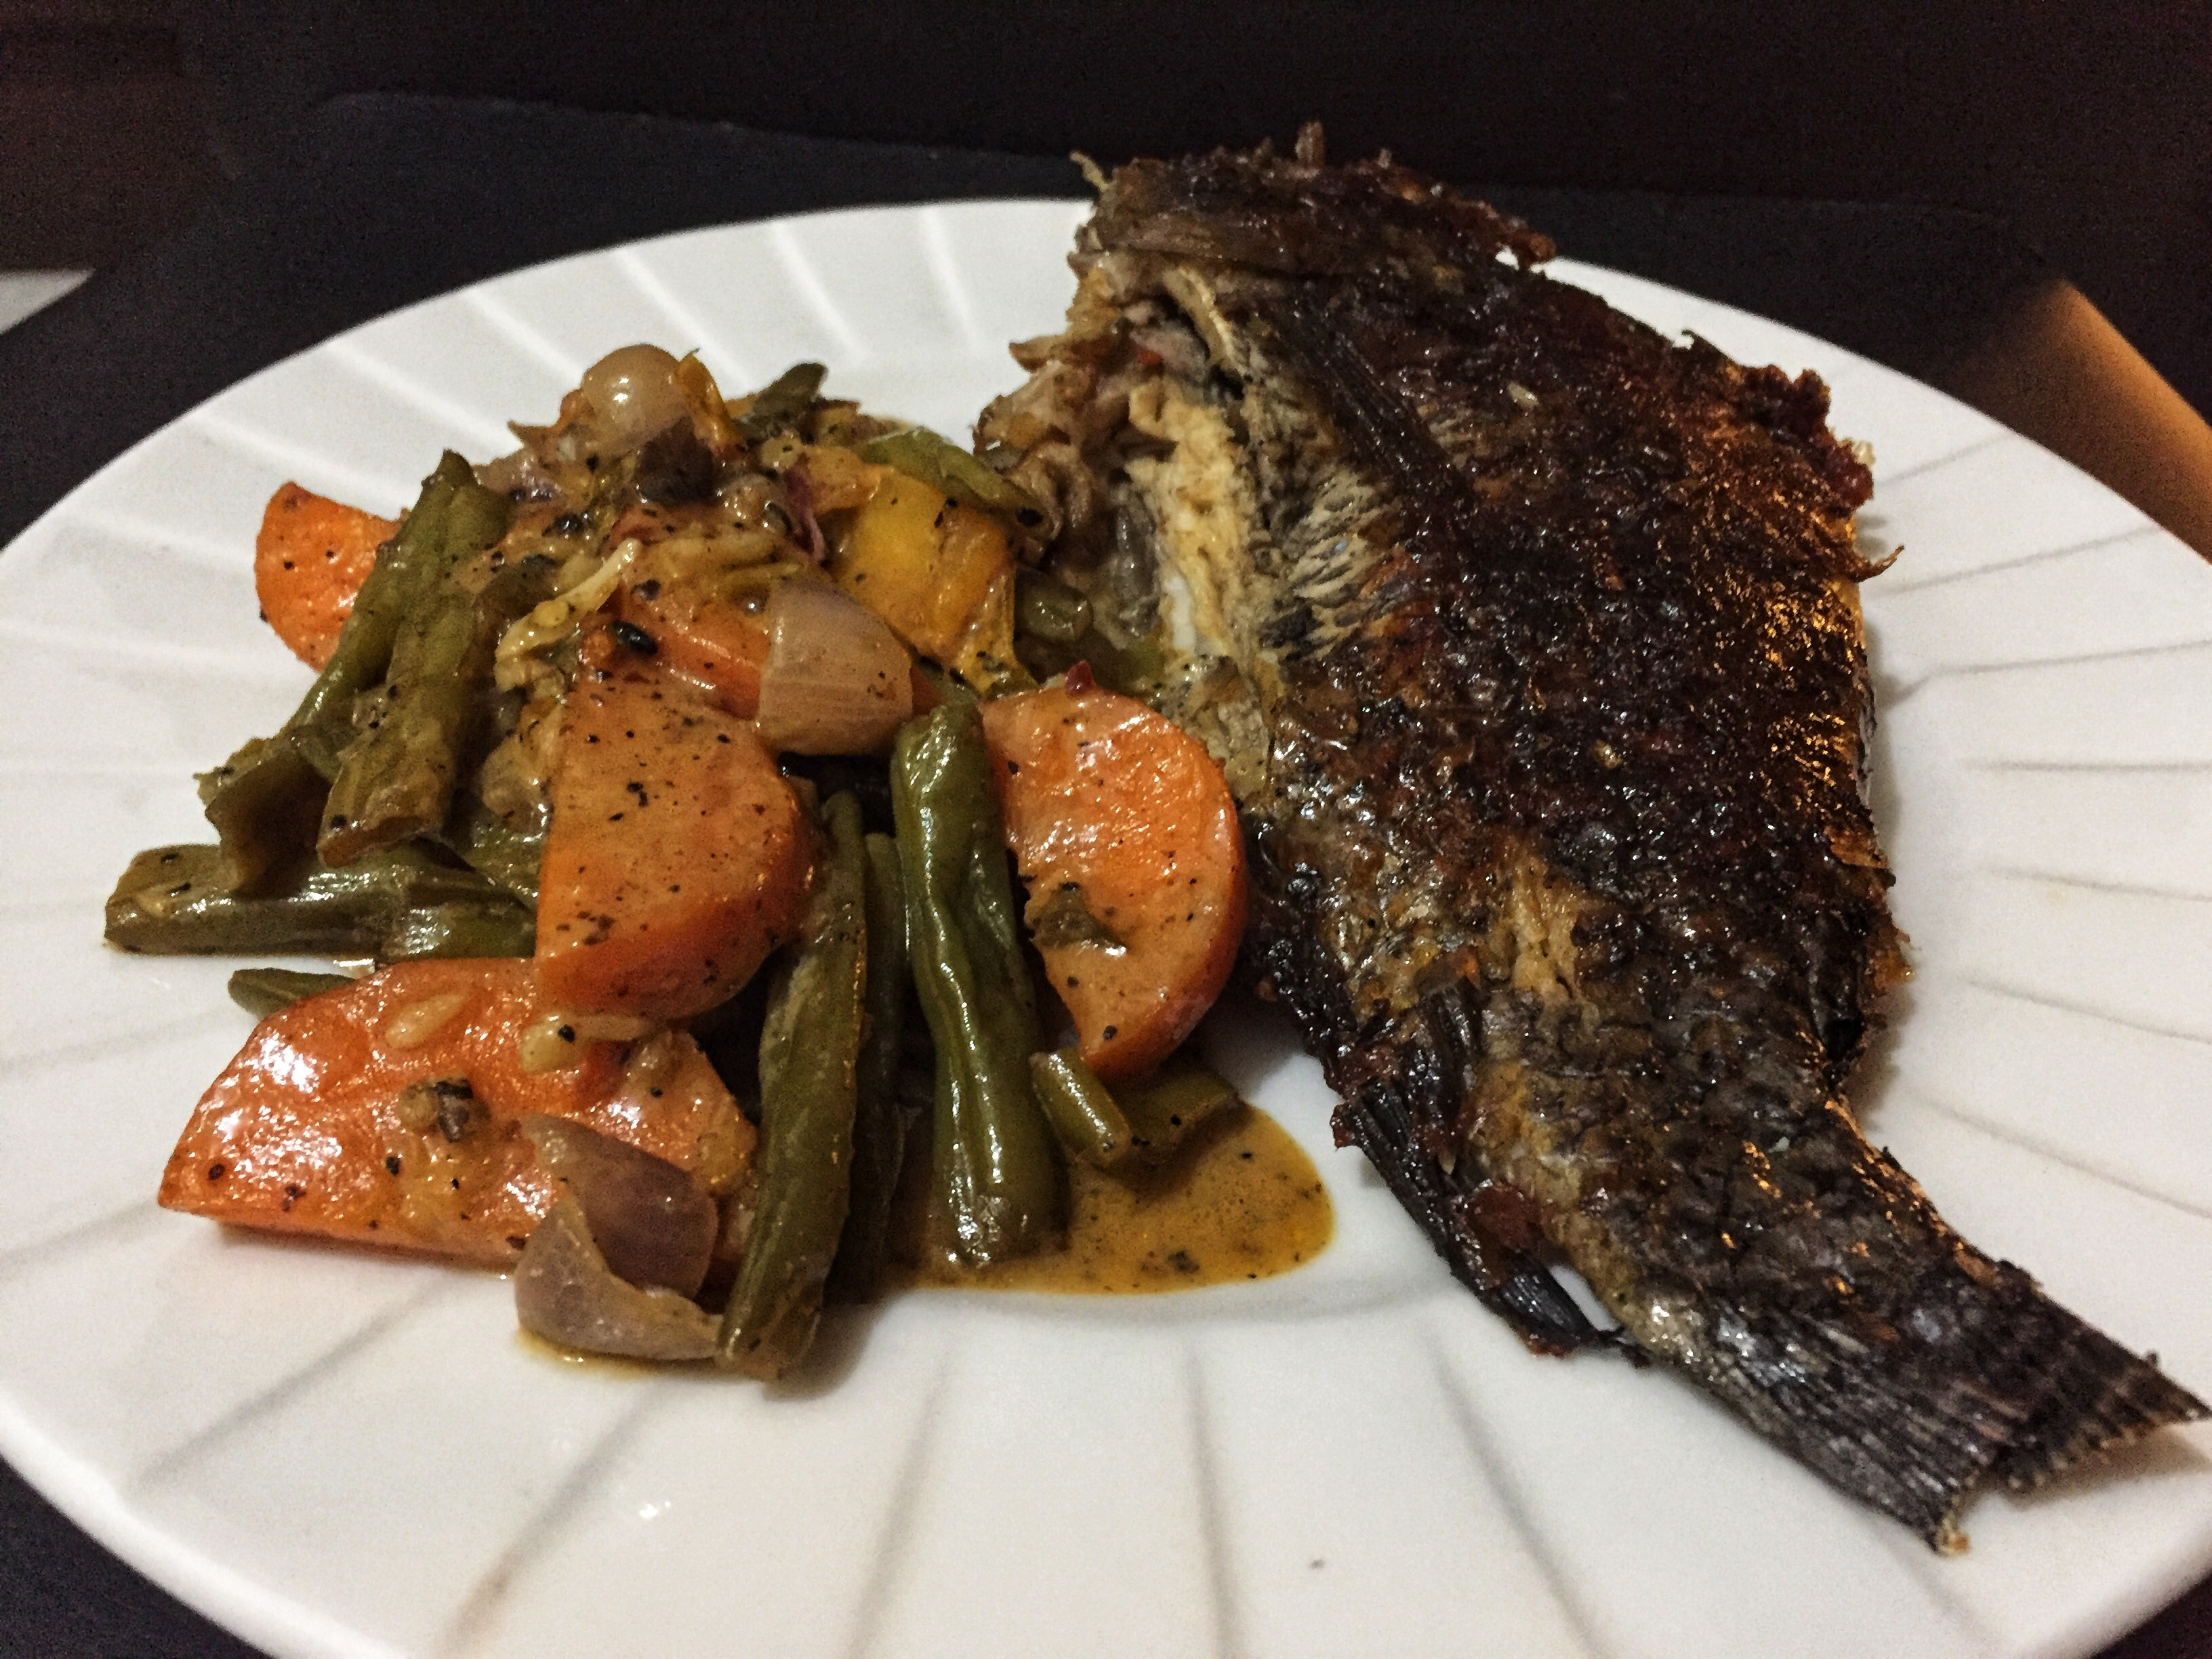 Keto Low Carbs High Fat Tilapia For Dinner